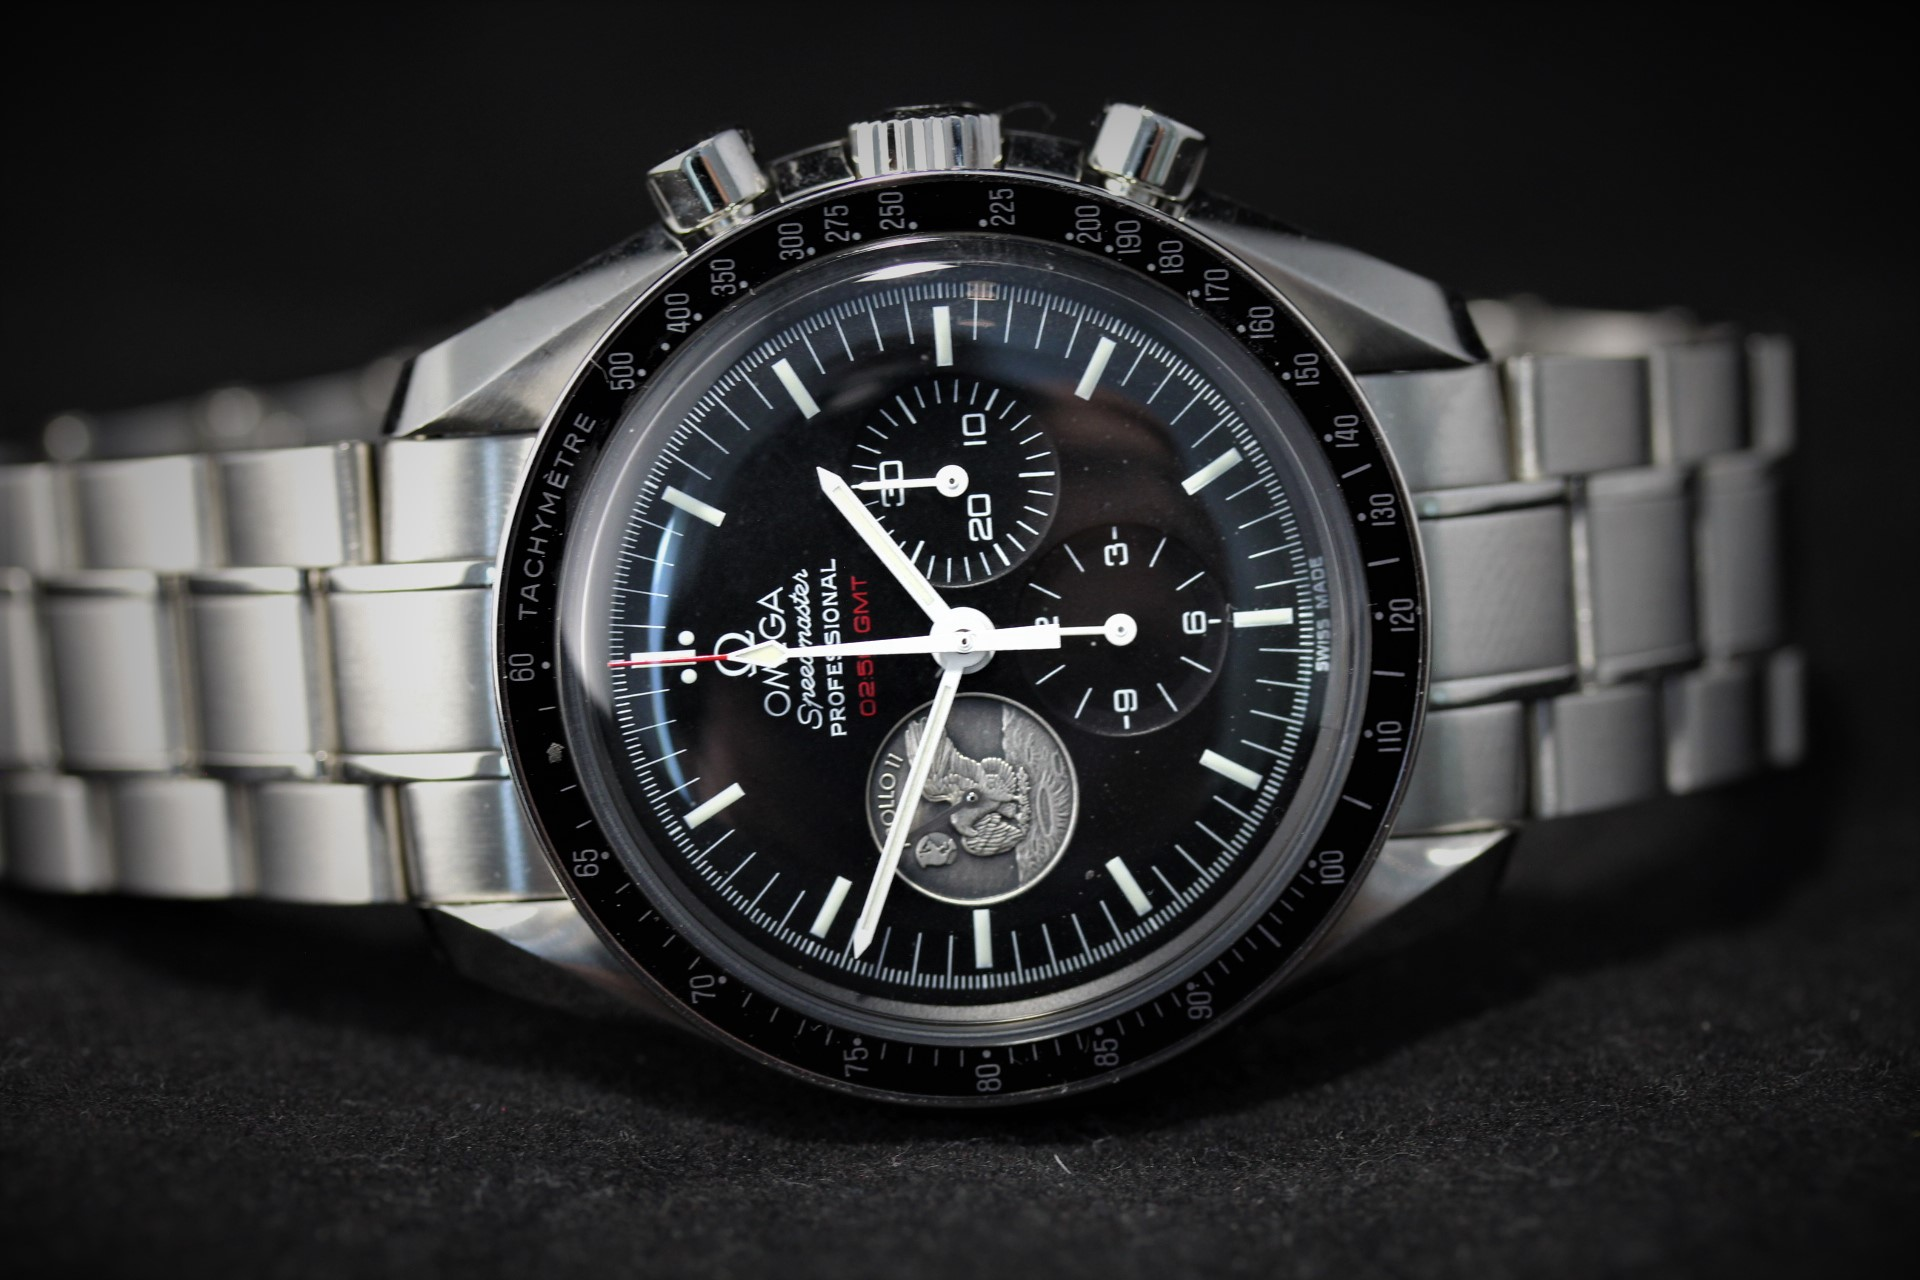 Omega Speedmaster Professional Moonwatch Apollo XI 40th anniversary LE